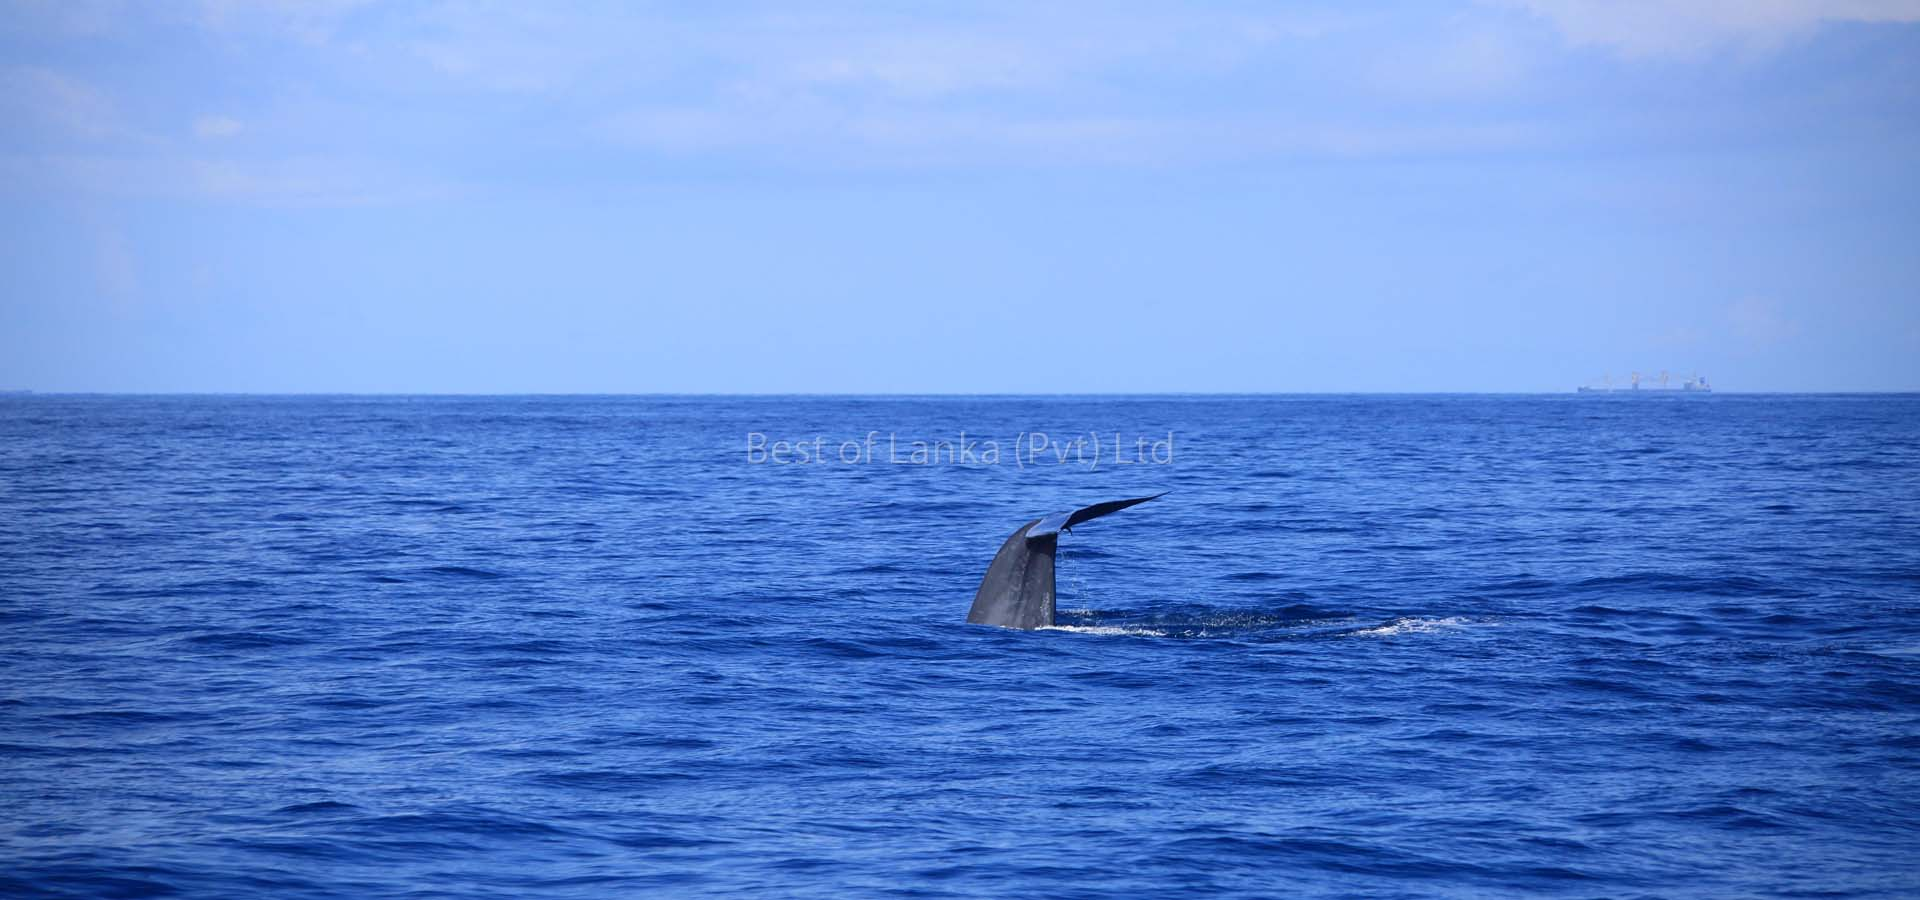 Whale watching day trip in Mirissa, Mirissa Whale watching Day Trip, Whale watching Excursion in Mirissa, Mirissa Whale watching Day Trip